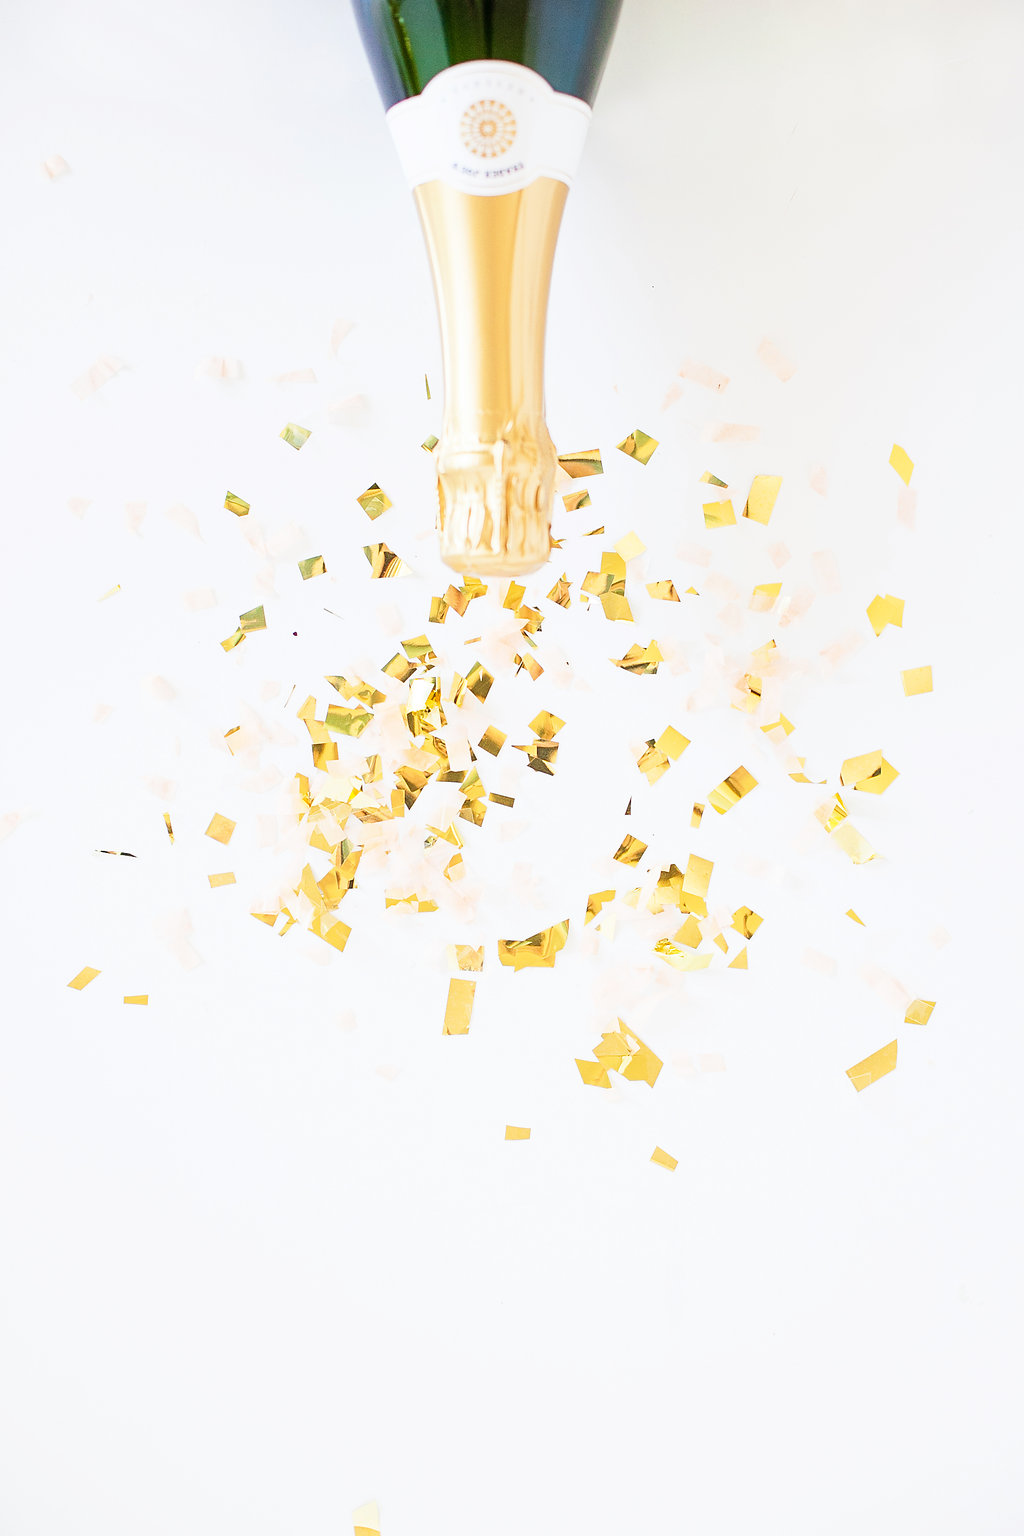 Pop, Fizz, and Clink Your Way Through Life